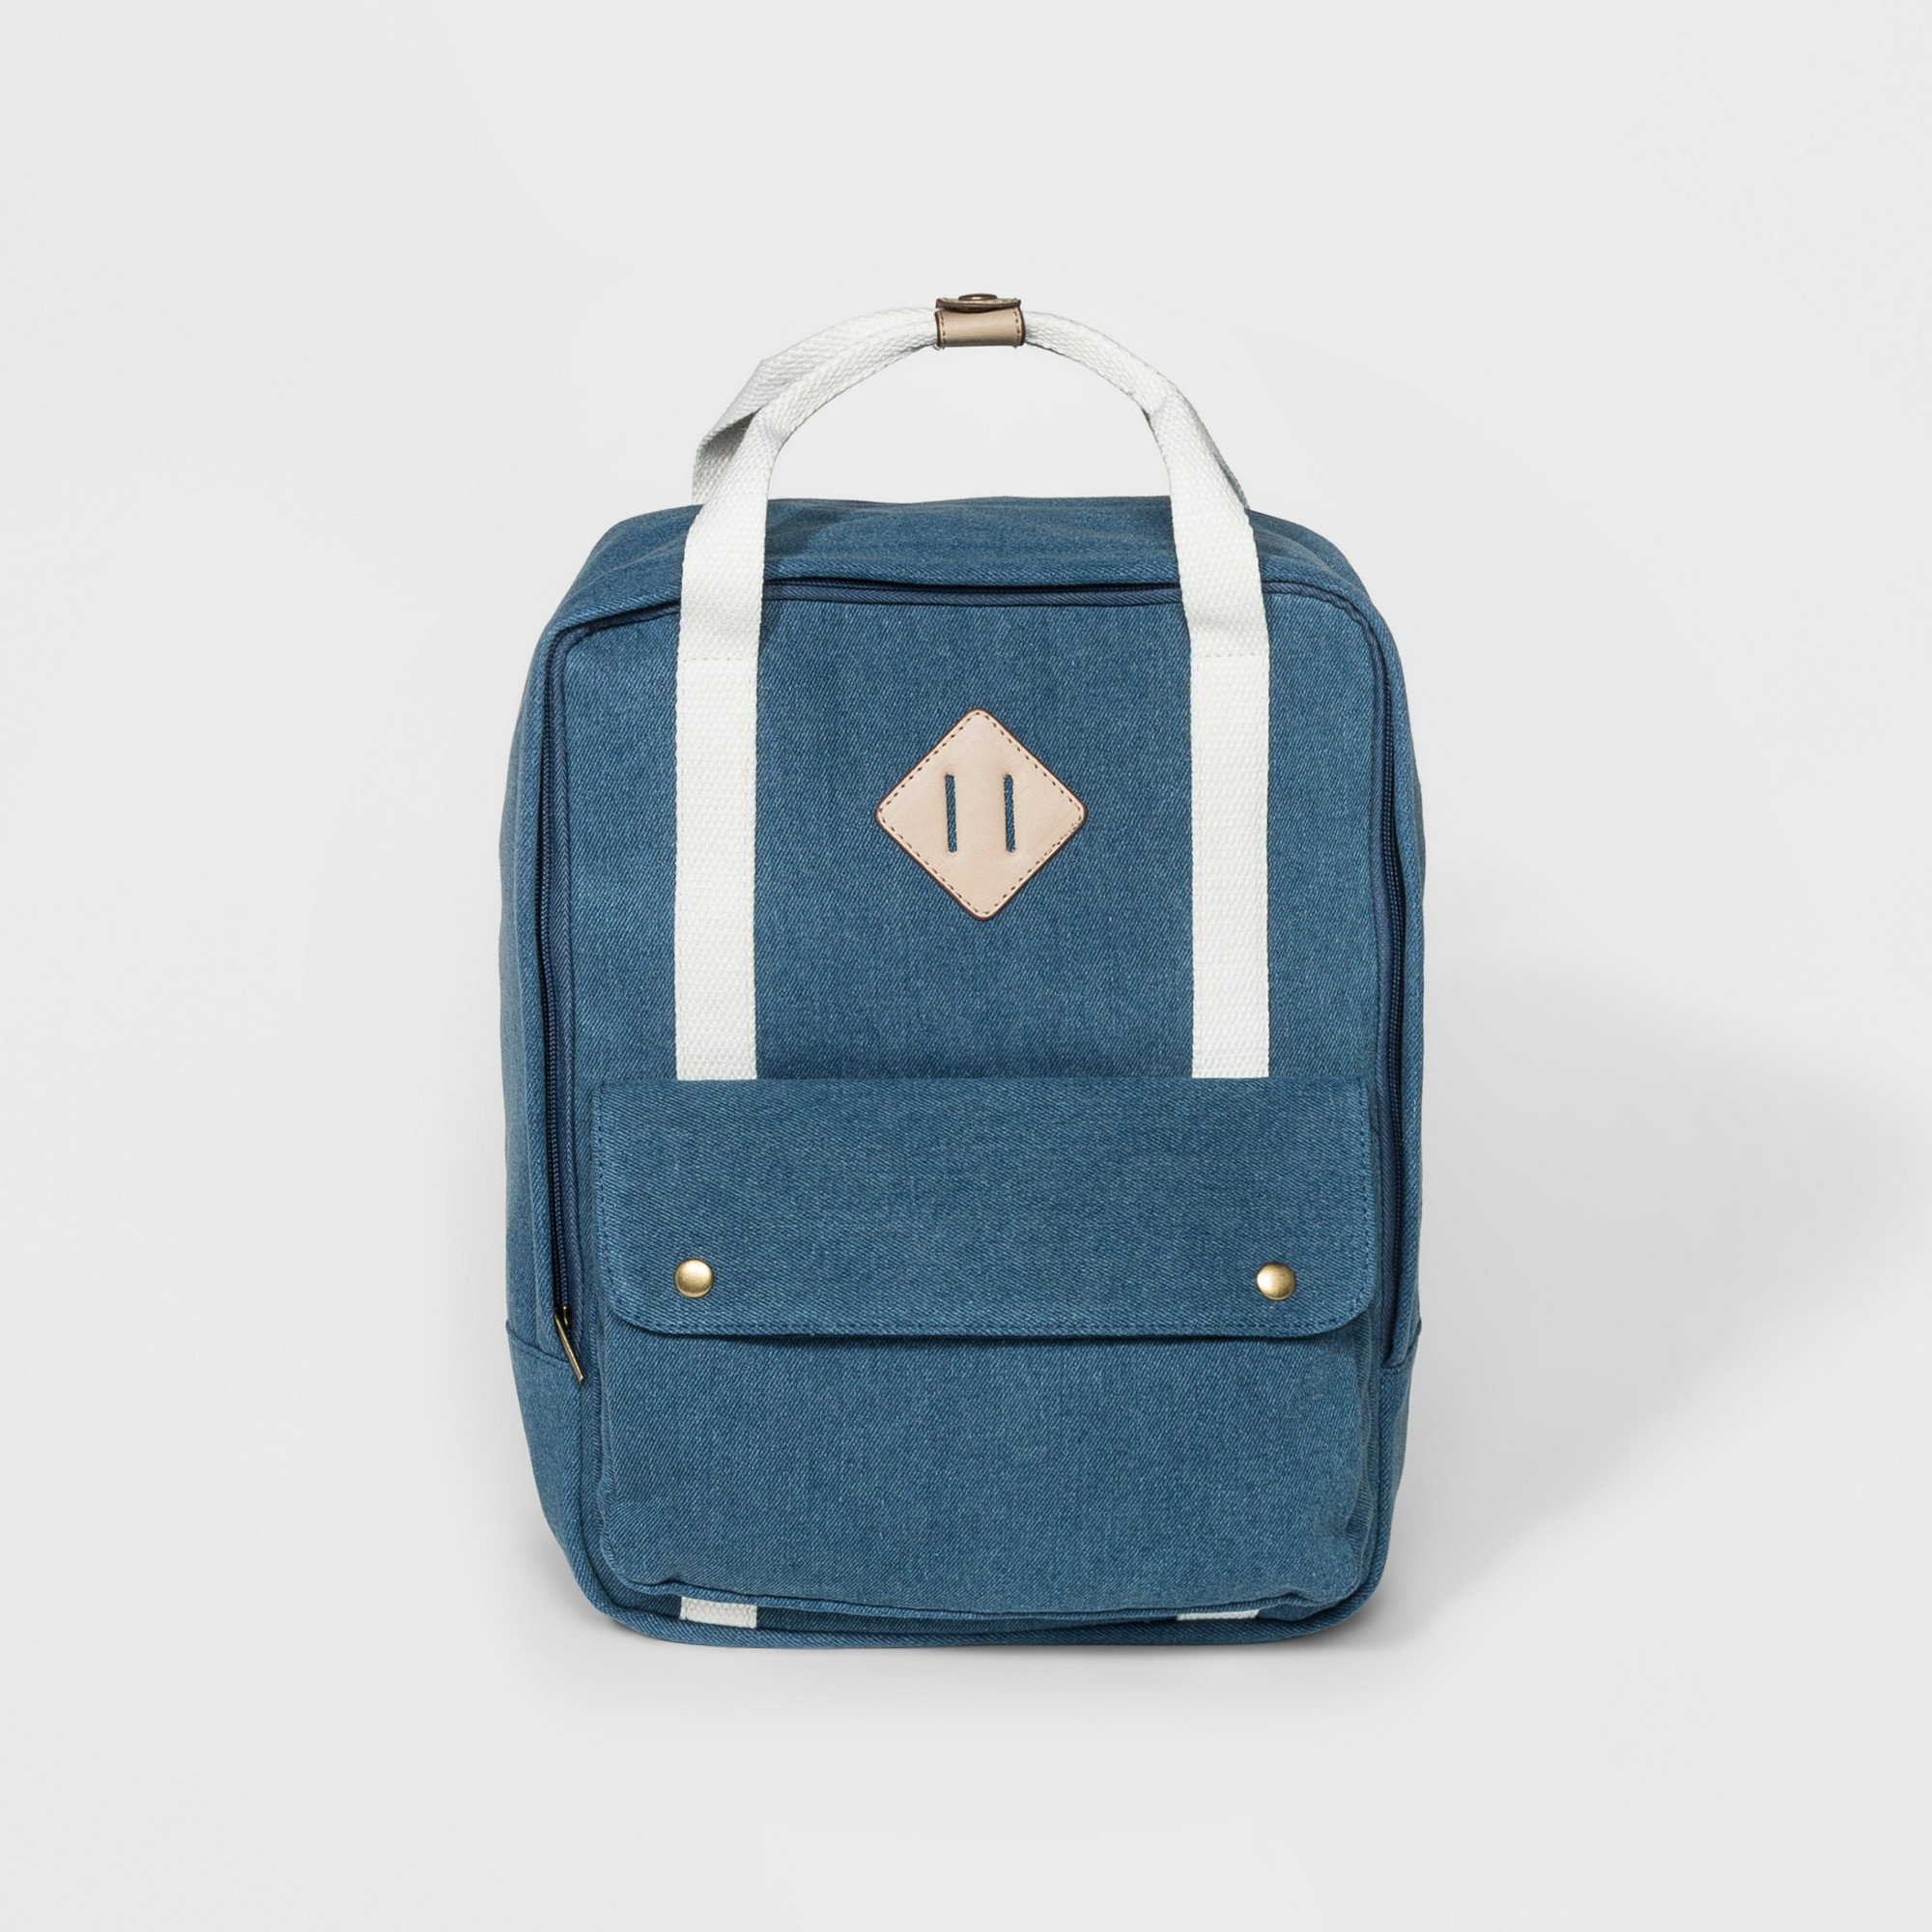 Denim (Blue) Square Backpack Handbag Wild Fable Denim